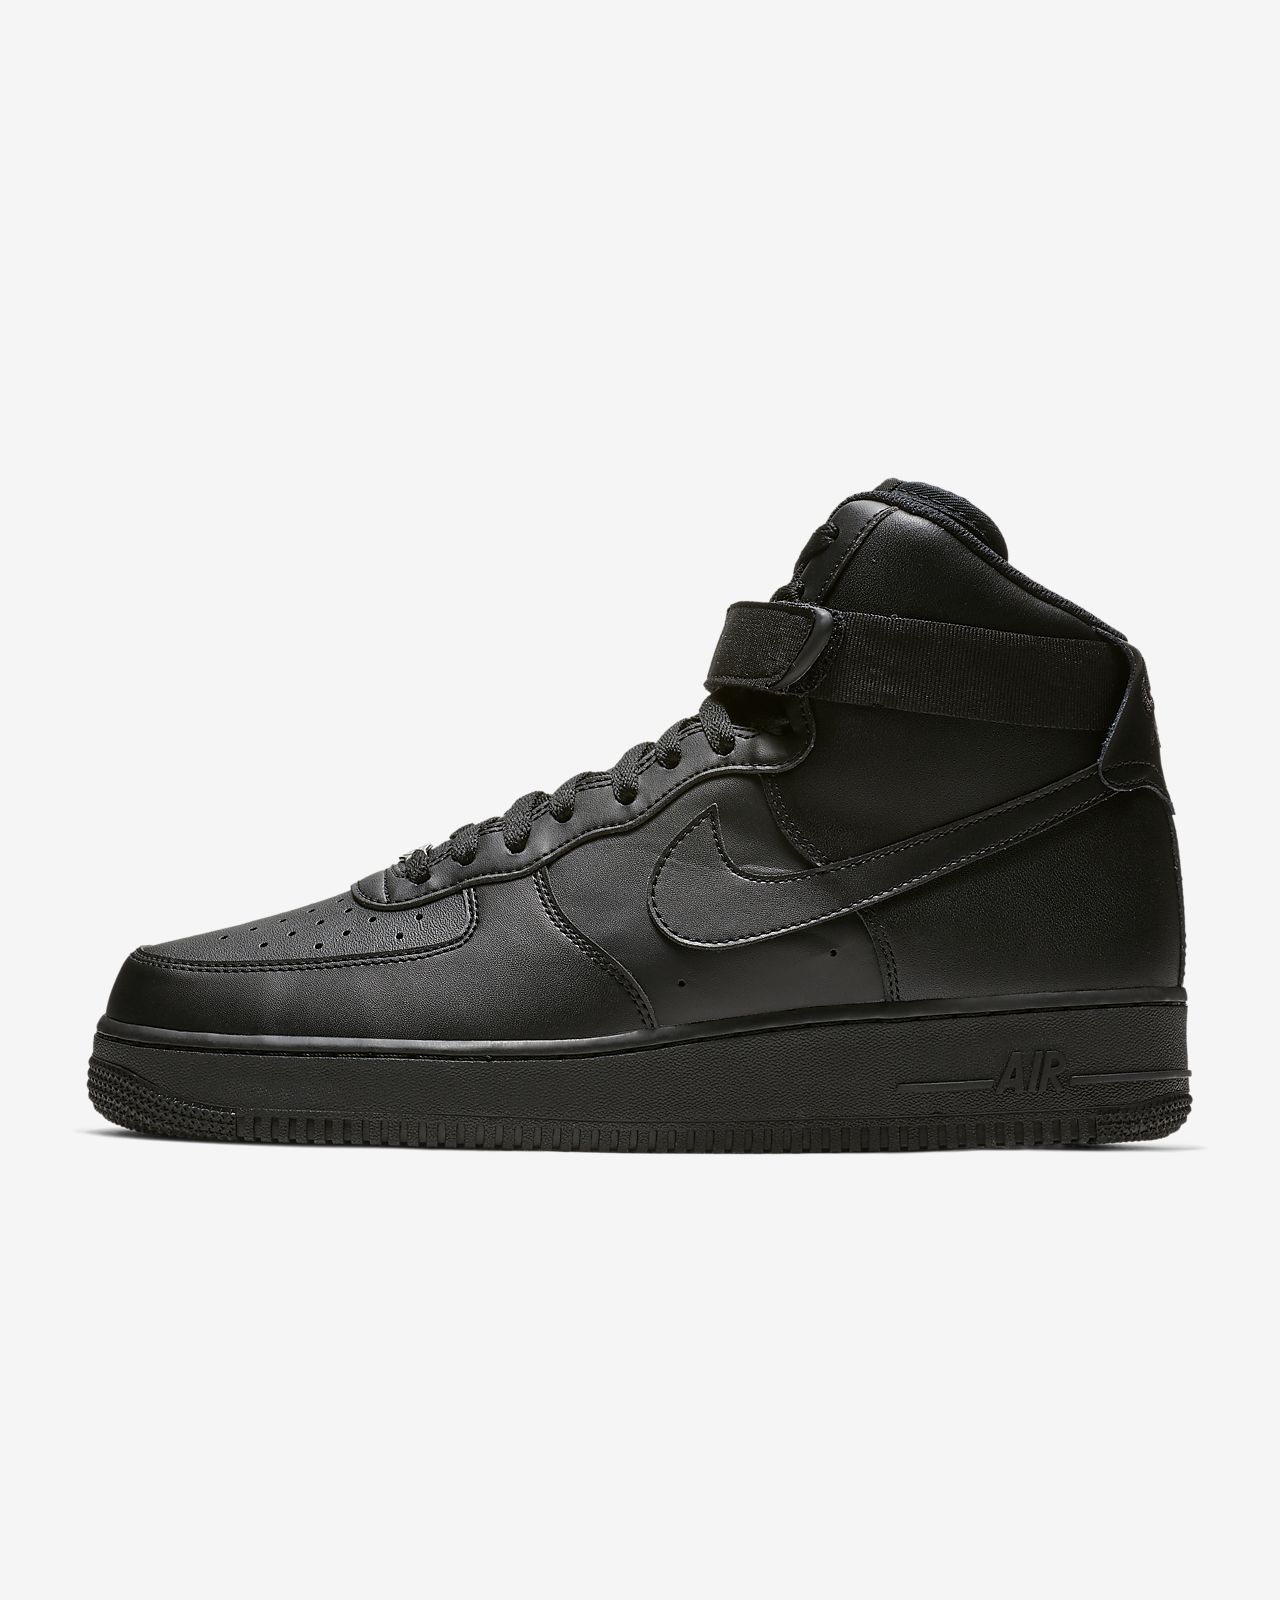 4004a10aeb Nike Air Force 1 High 07 Men's Shoe. Nike.com